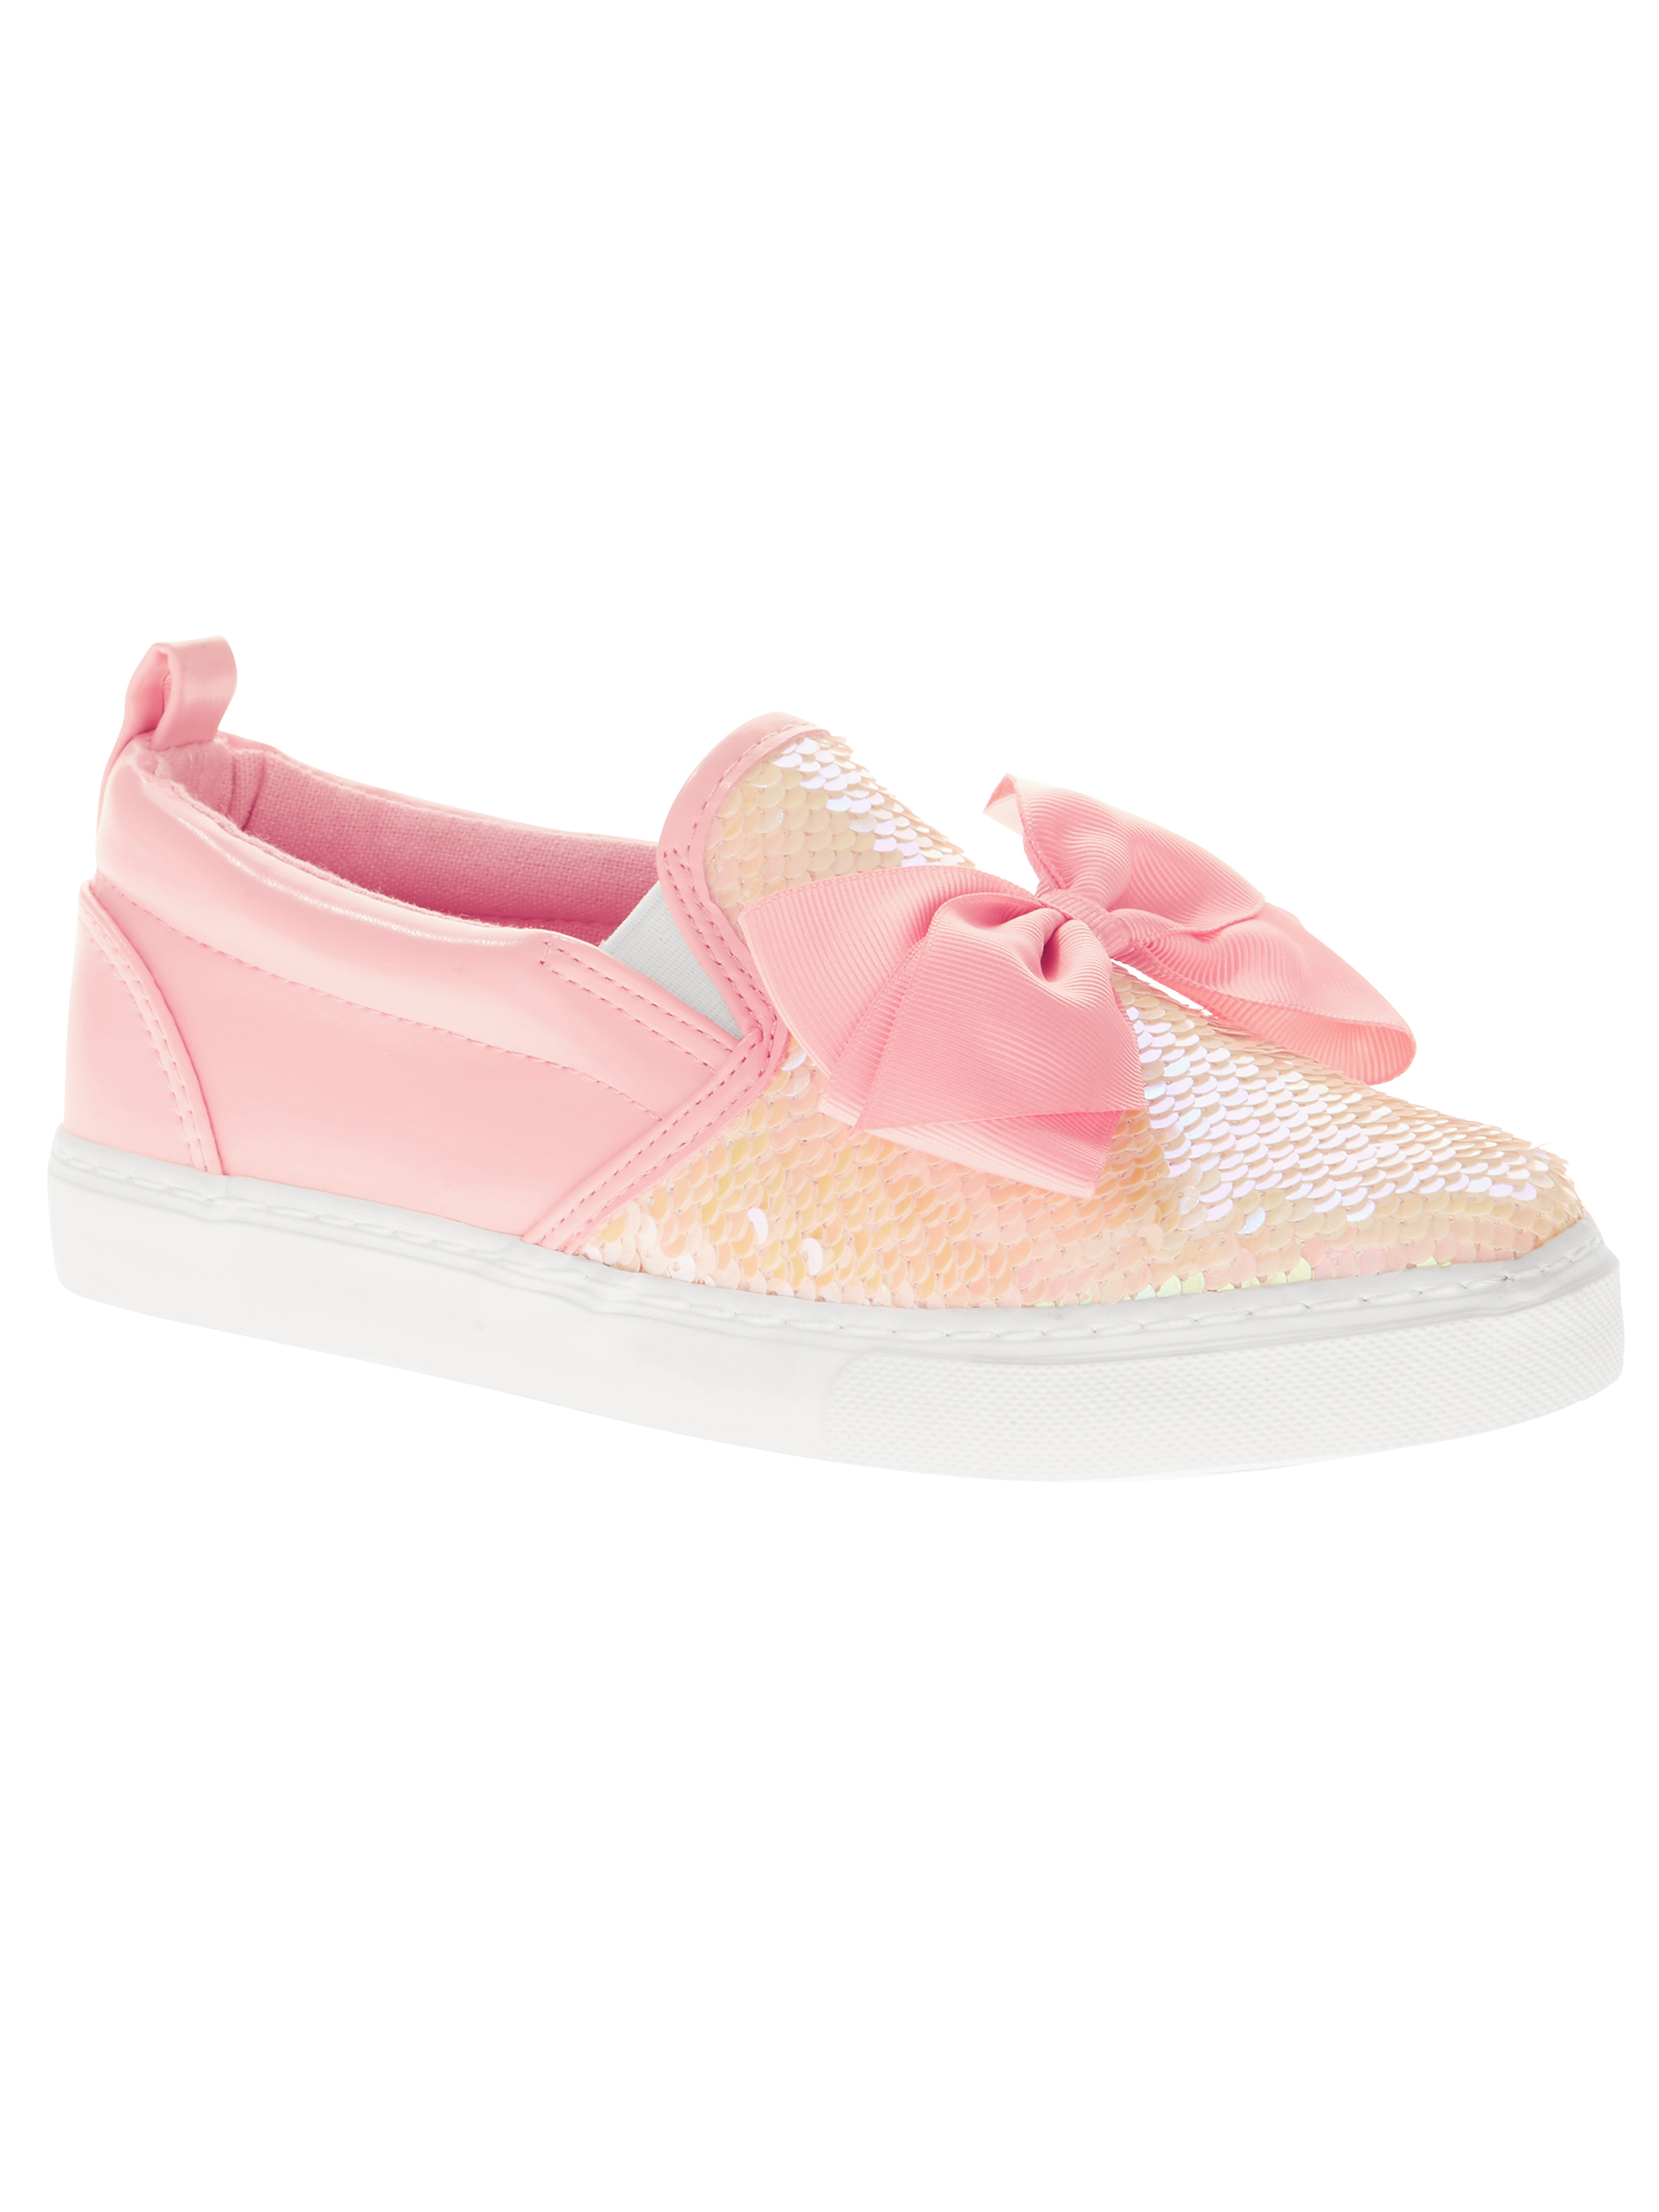 Jojo Siwa Girls' Sequin Casual Slip-on